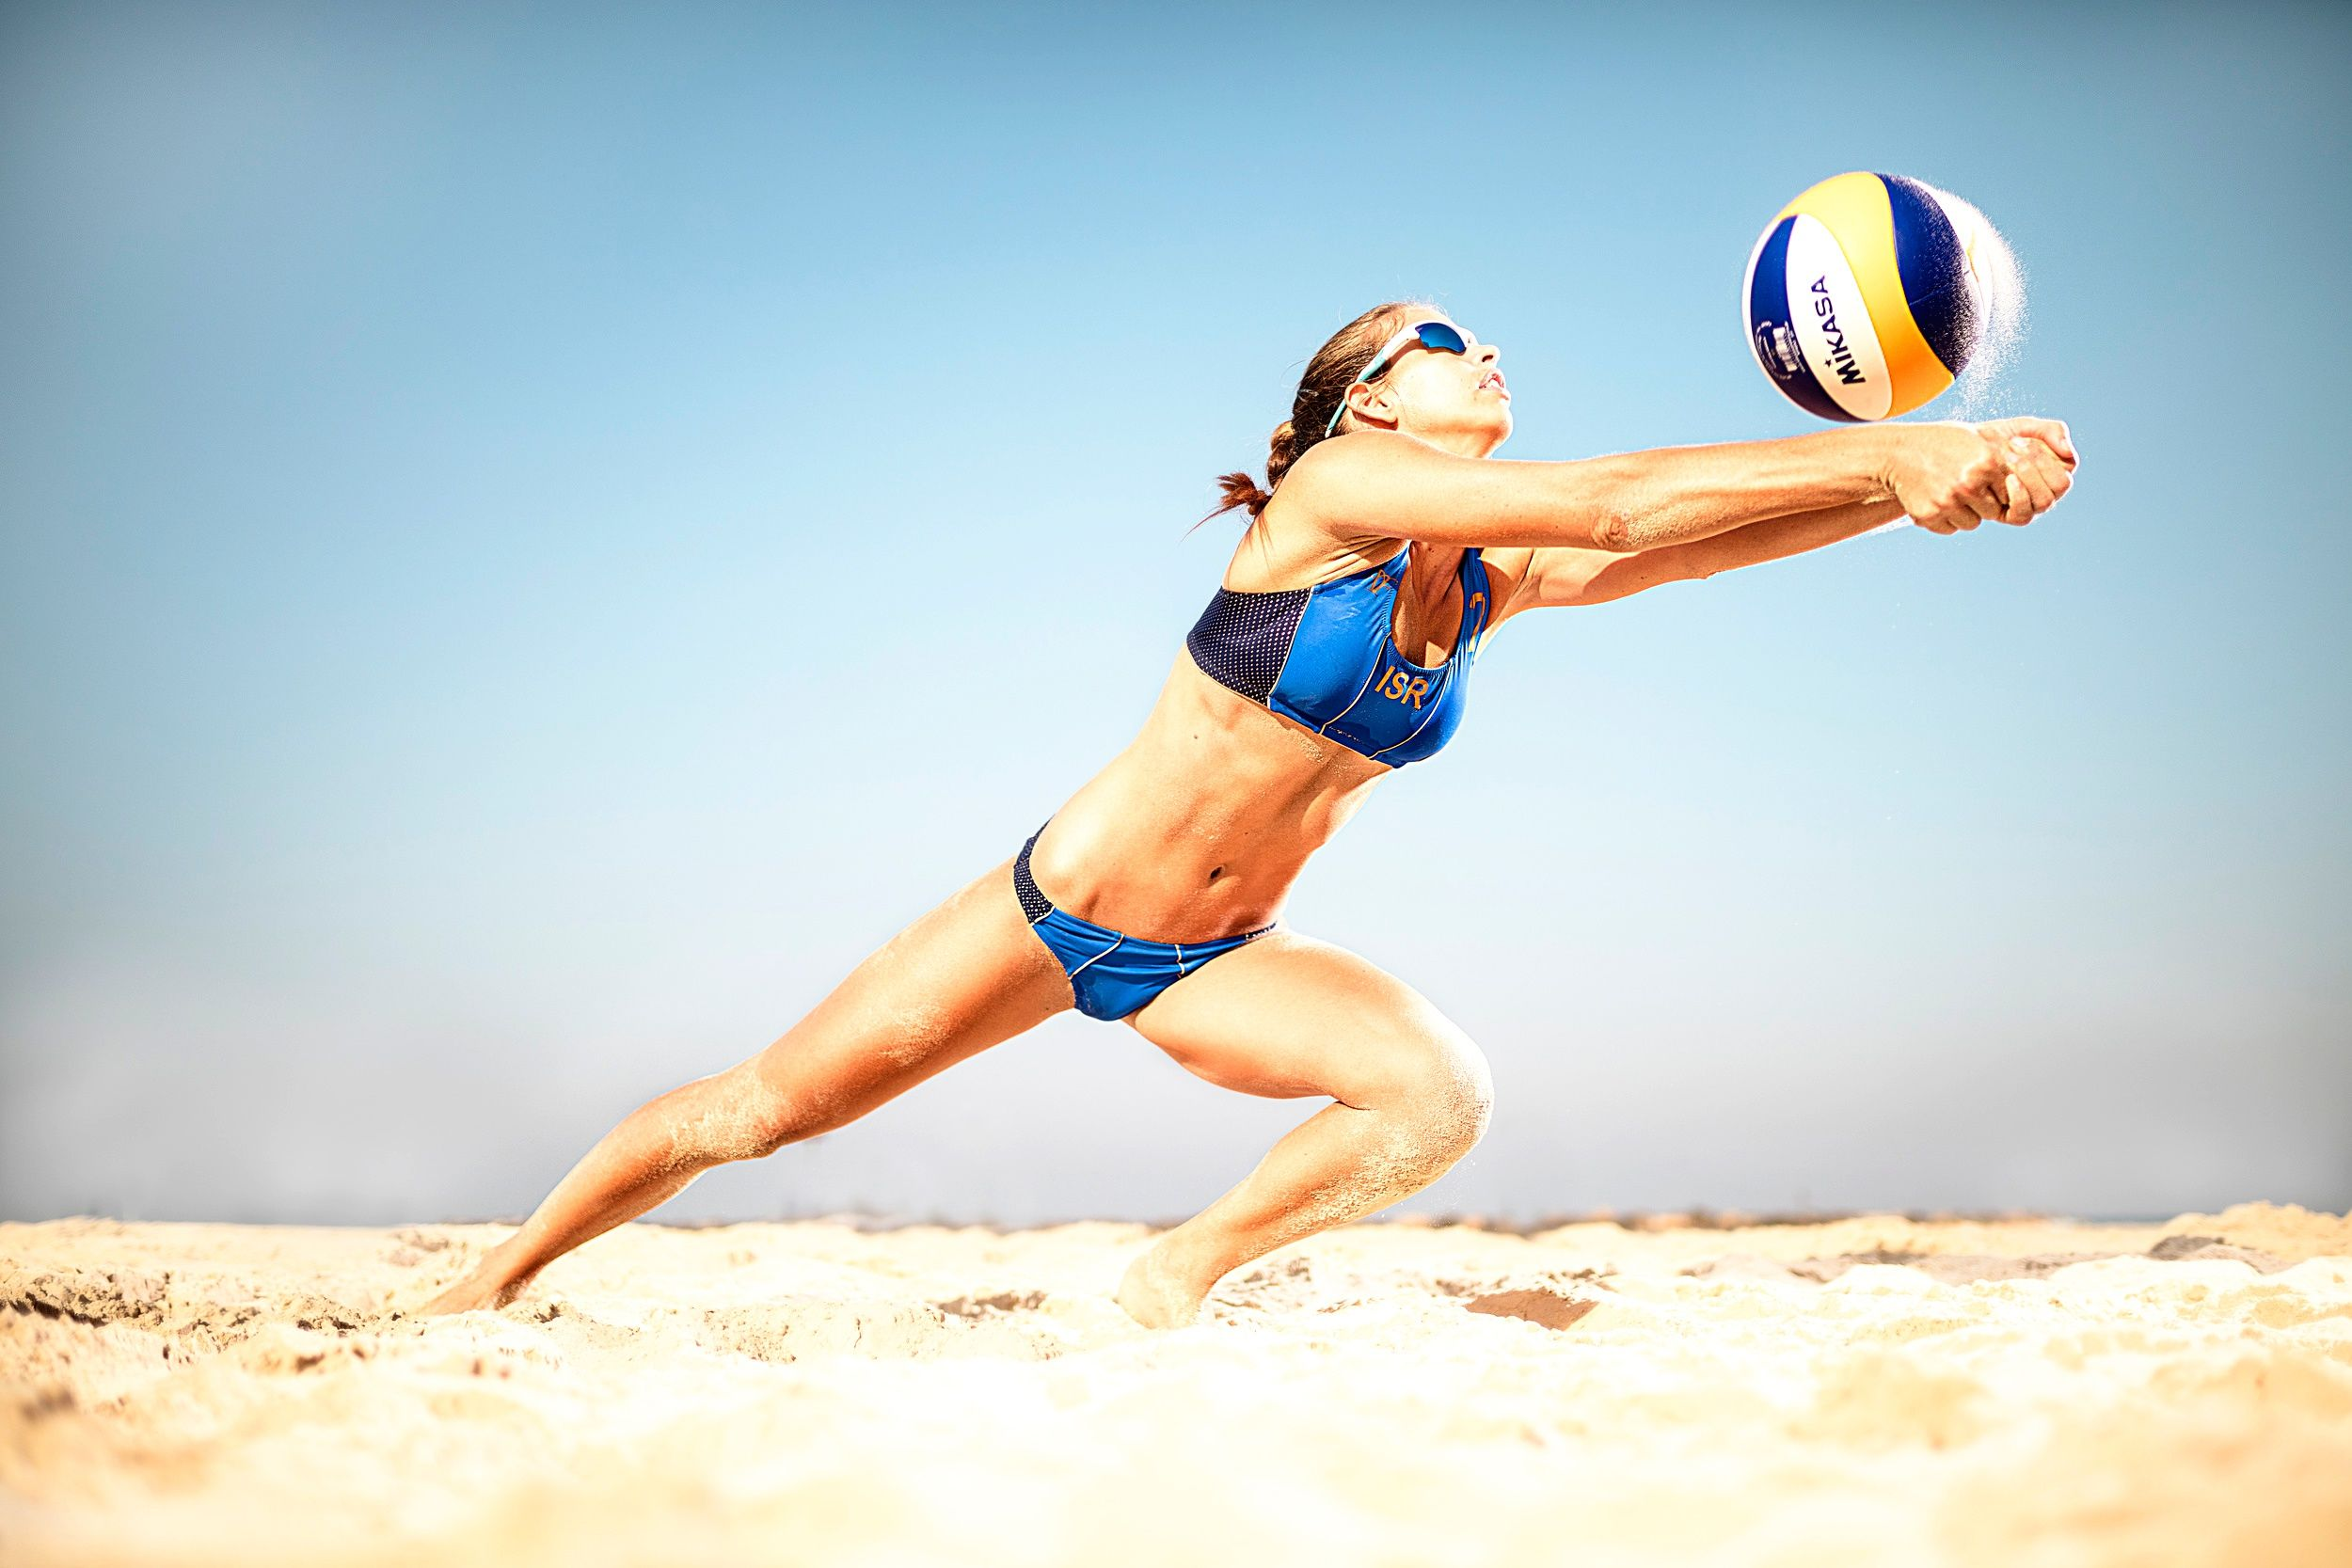 Pin By Cali Orchards Hard Sparkling W On Www Caliorchards Com Sports Illustrated Swimsuit Hot Beach Volleyball Volleyball